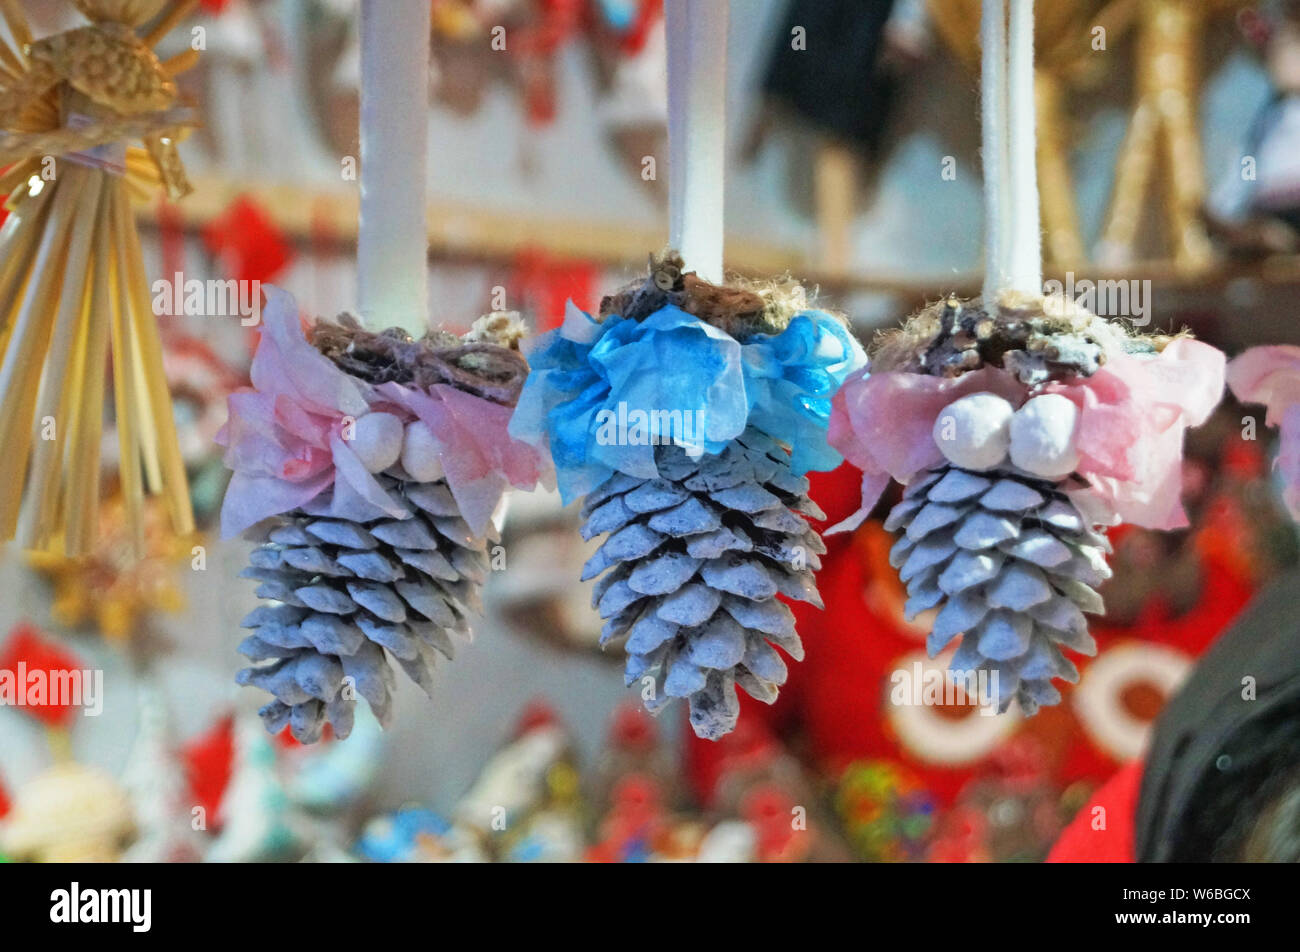 Colorful Christmas Tree Decorations.Christmas Tree Decorations Made Of Glass Wood And Fabric Of